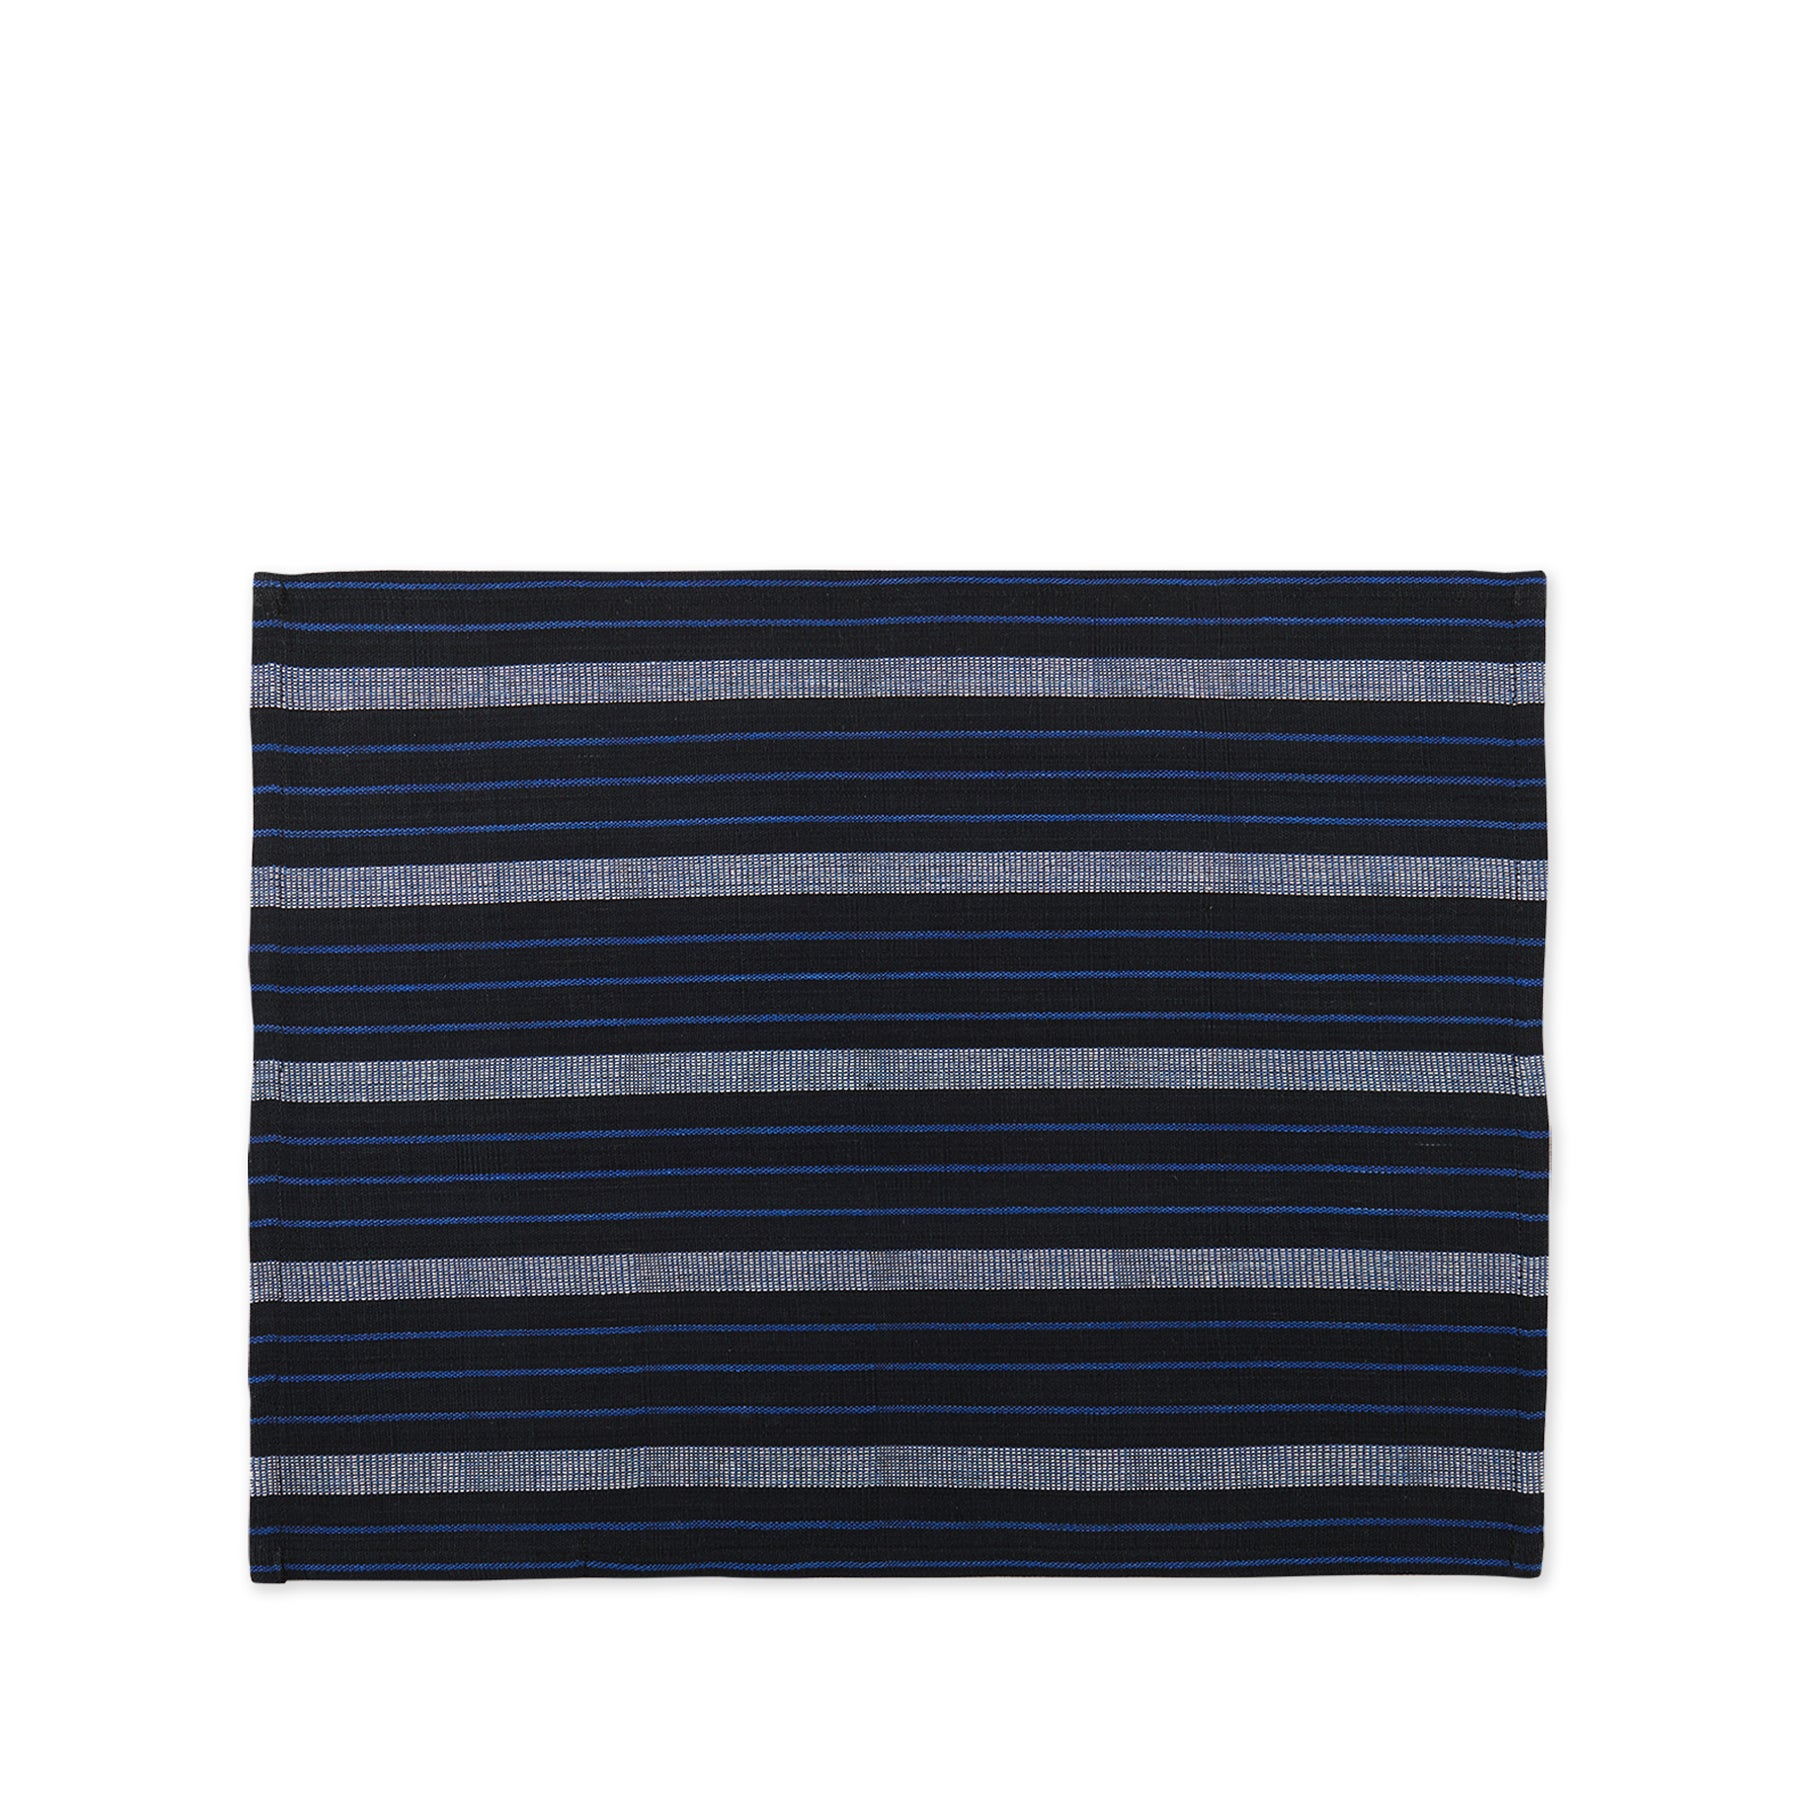 Cotton Striped Placemat in Blue and Black Zoom Image 1